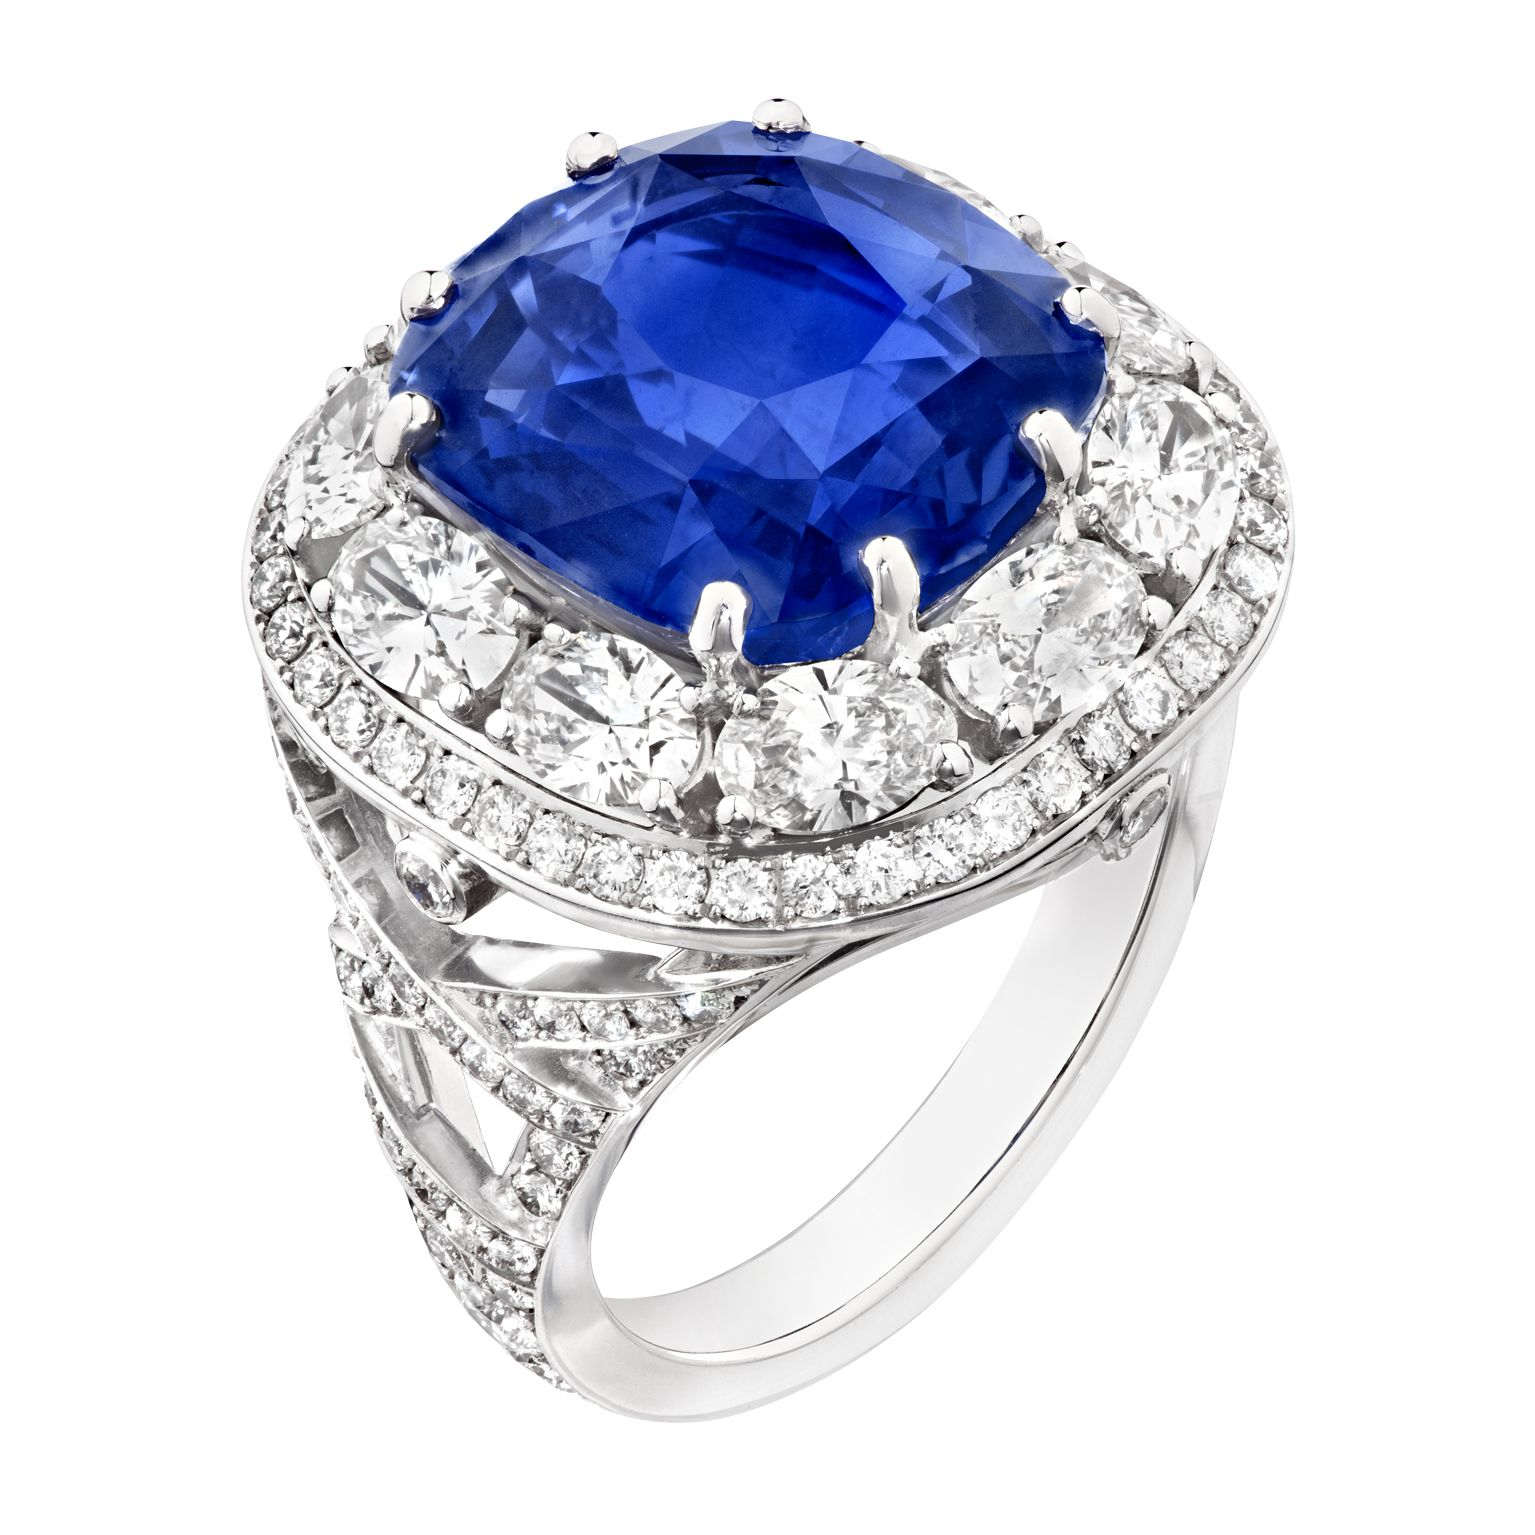 sapphire diamond picture jewelry jewellery en soutou of ring rings genuine gold joud